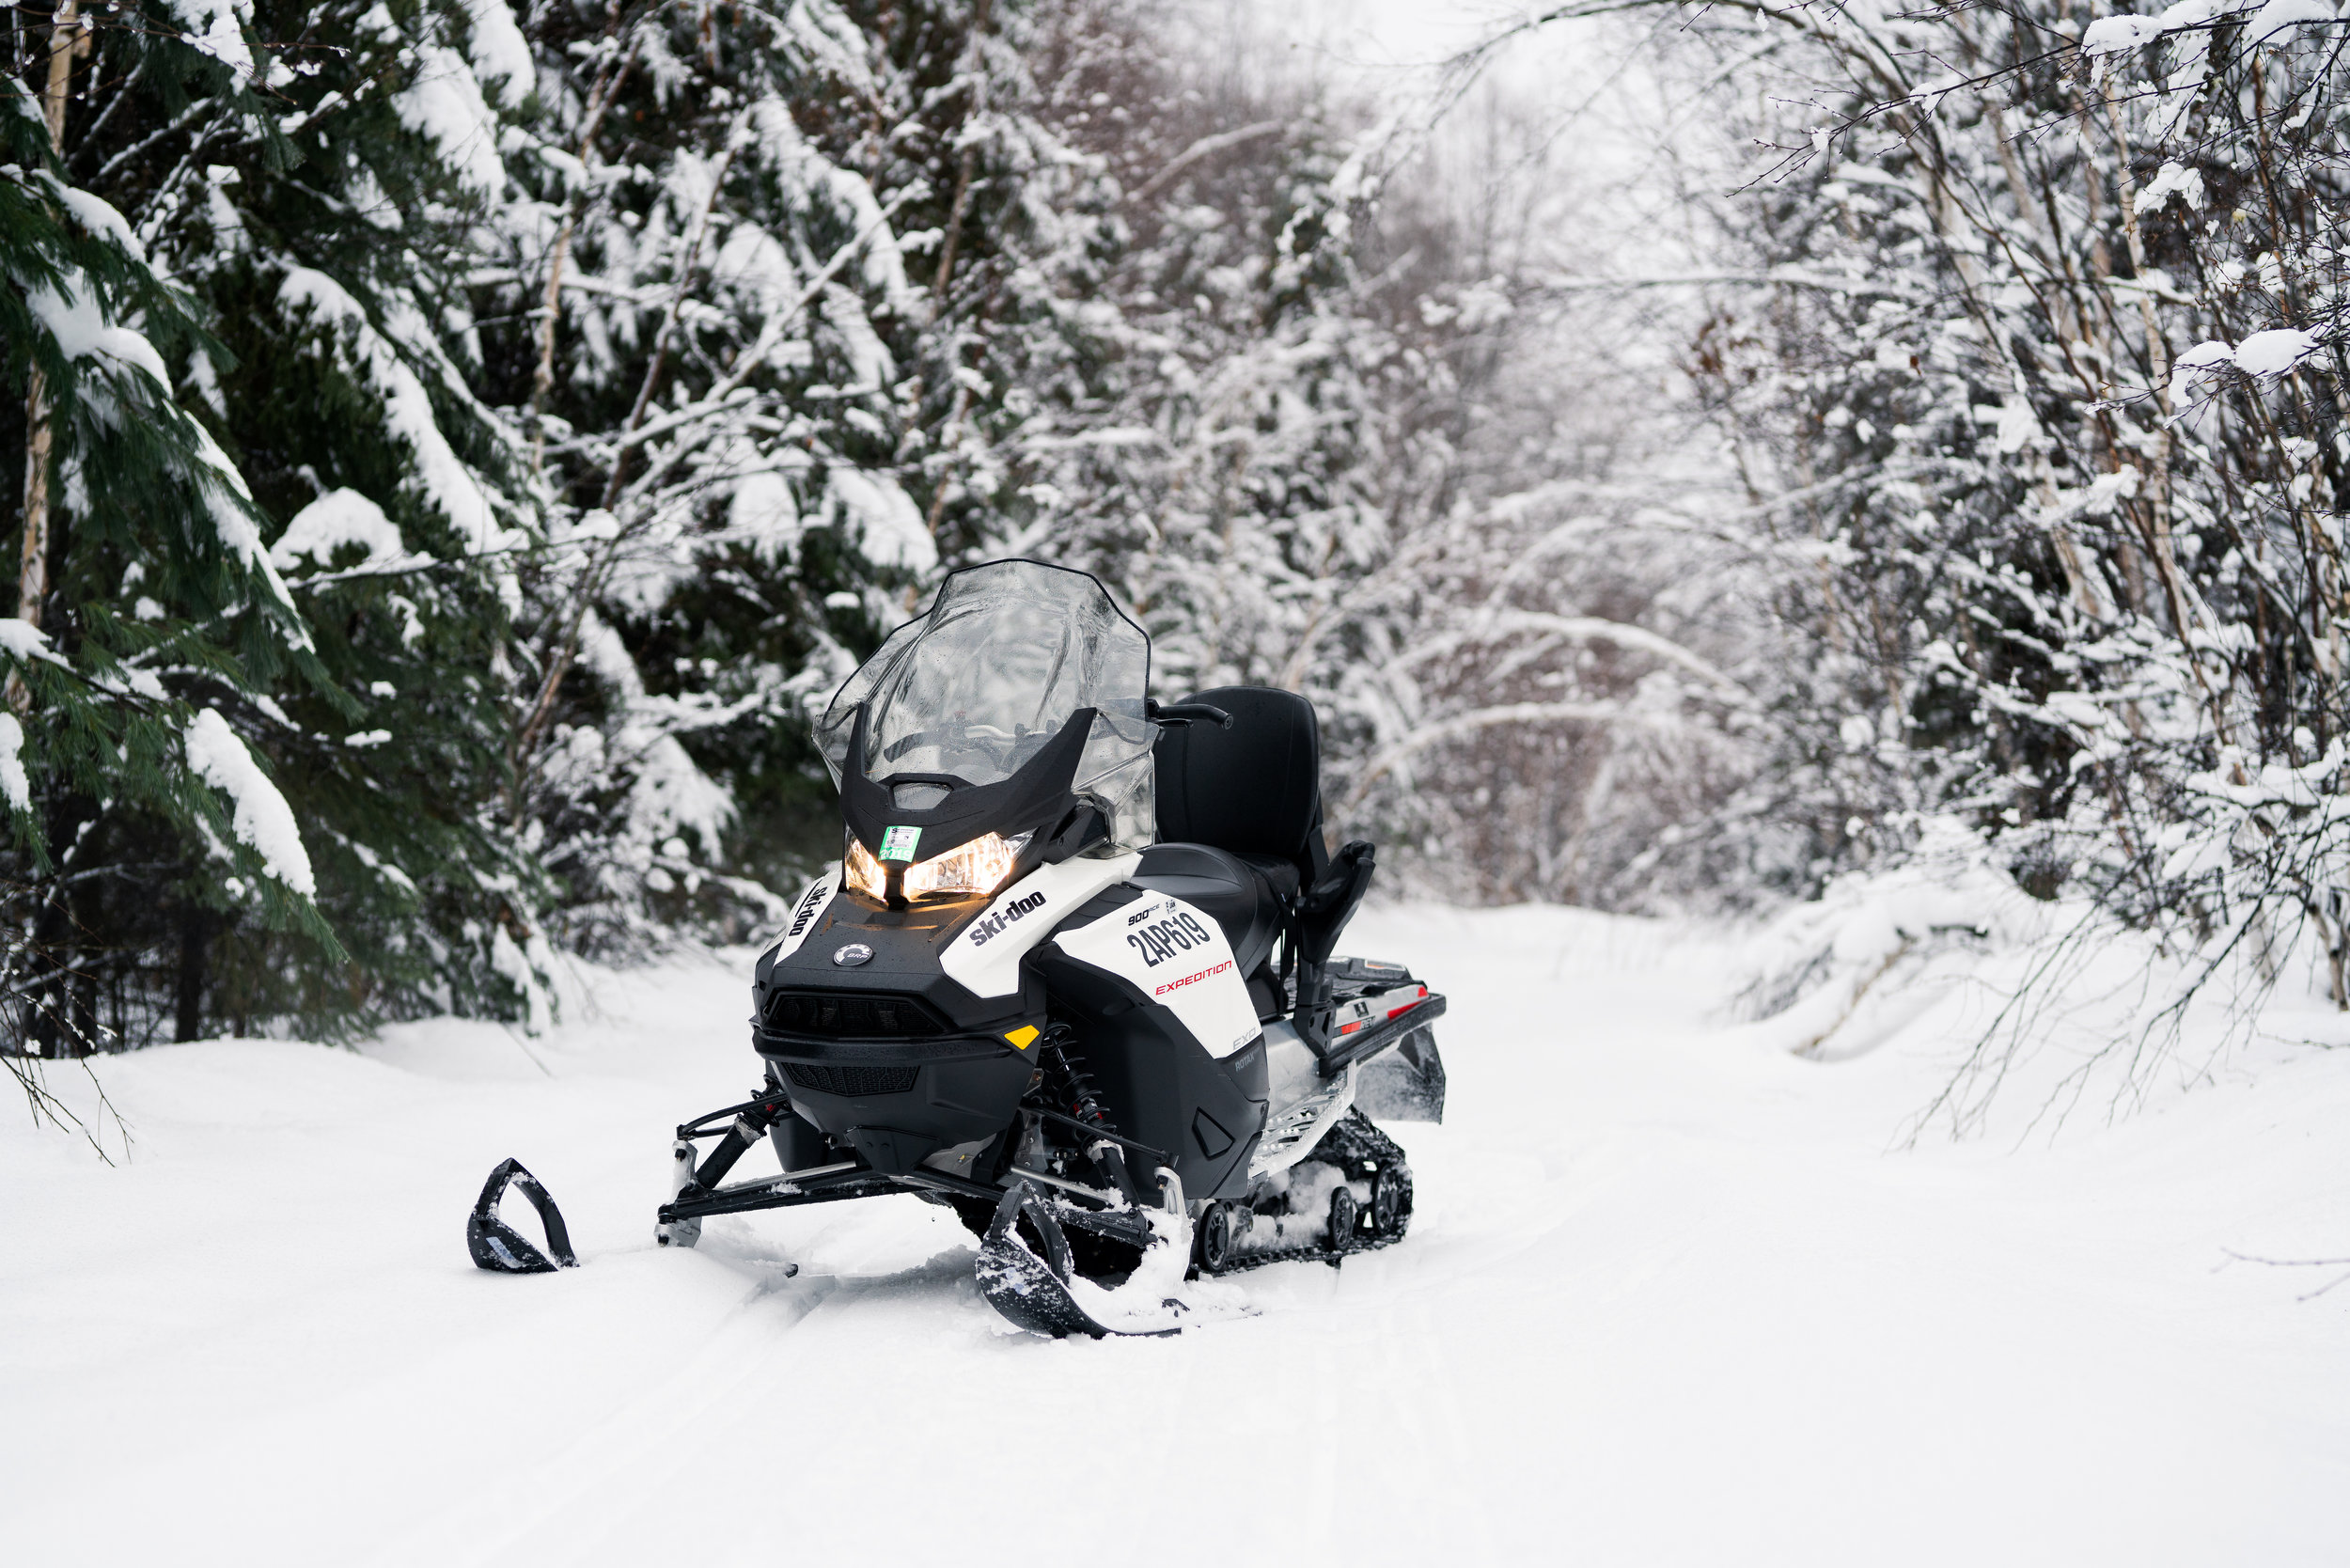 Ski Doo Expedition Sport Rev 4. It was almost too easy to do wheelies on this thing.